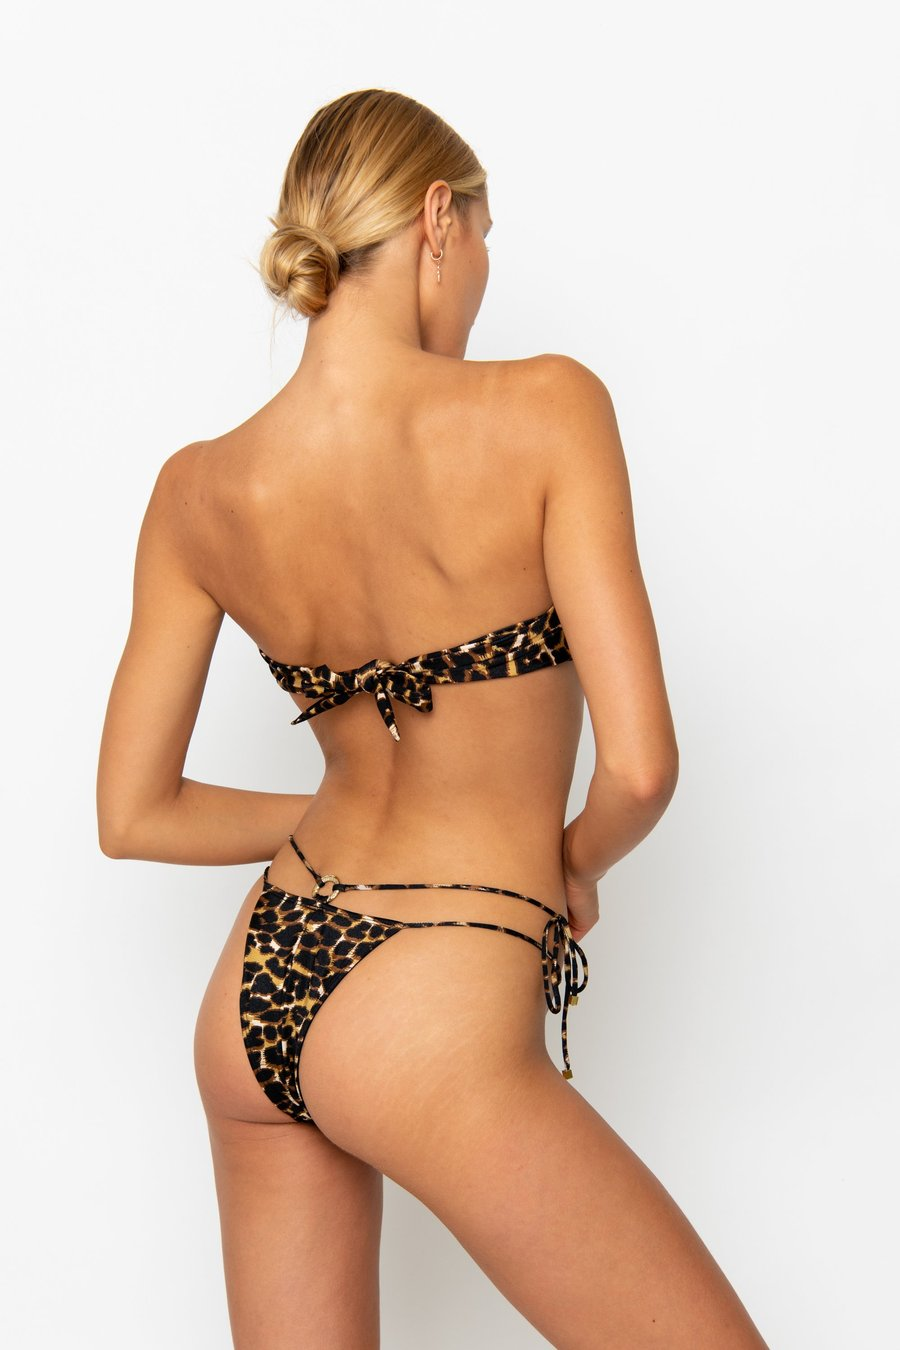 DULCE LEOPARD LUXE - TIE SIDE BIKINI BOTTOM by Sommer Swim, available on sommerswim.com for $69 Bella Hadid Shorts SIMILAR PRODUCT